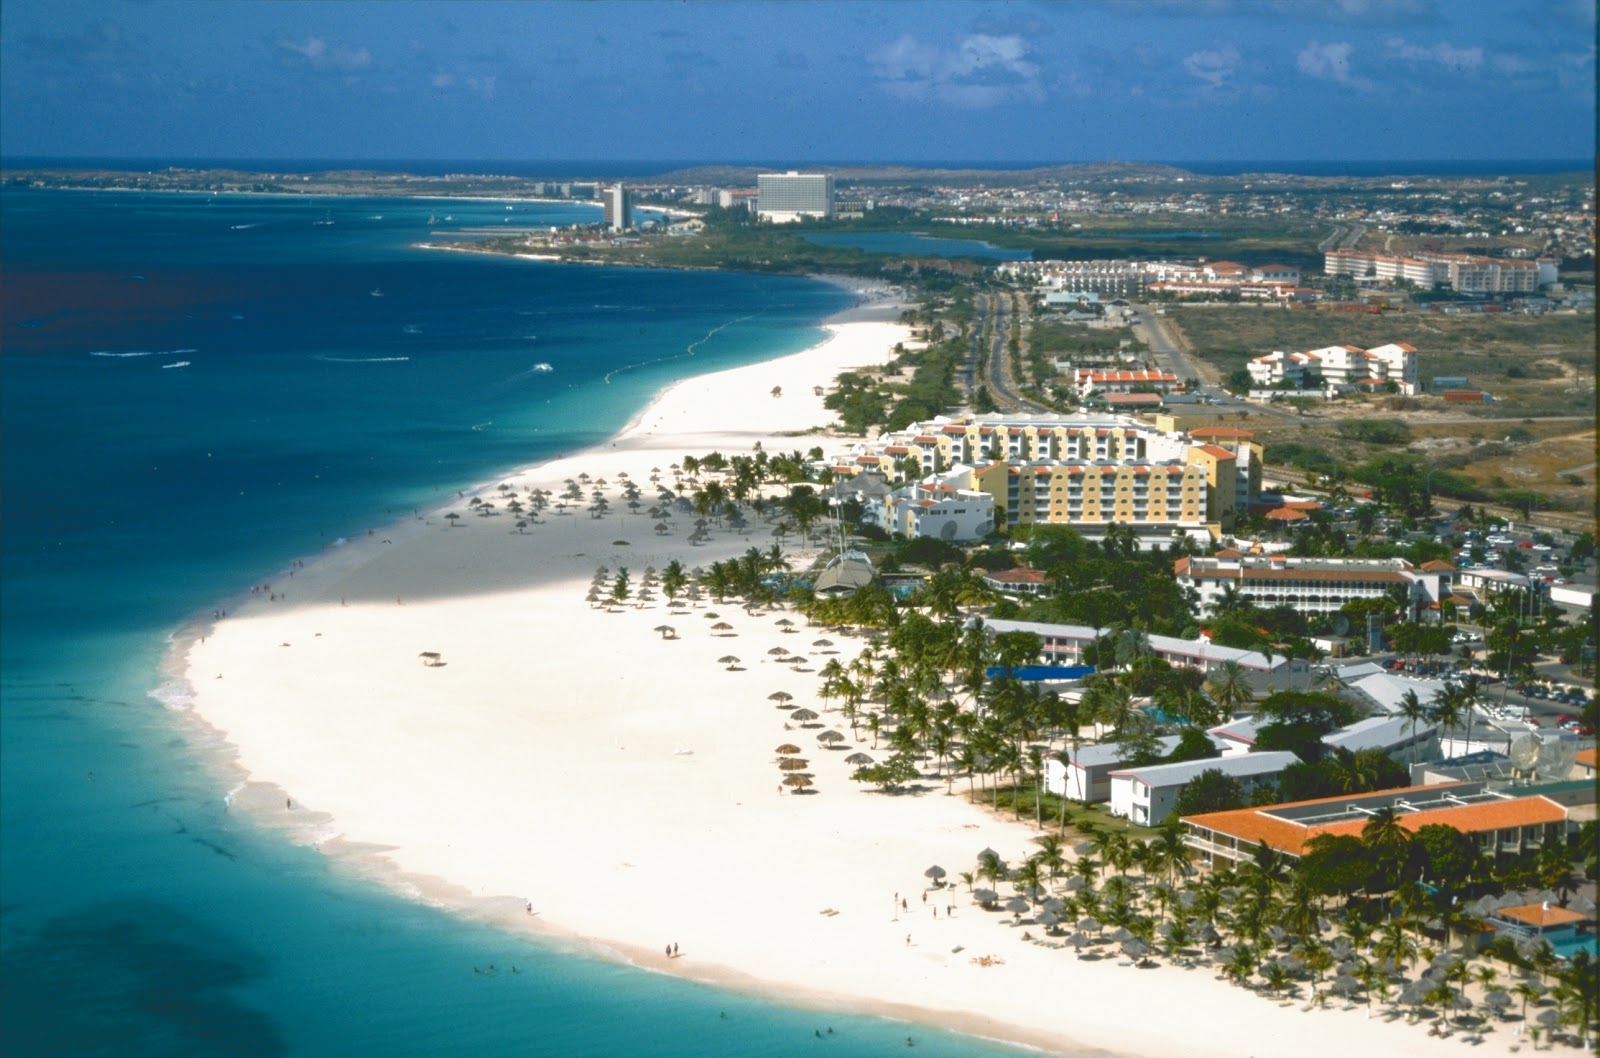 16 FACTS ABOUT ARUBA THAT WILL SURPRISE YOU